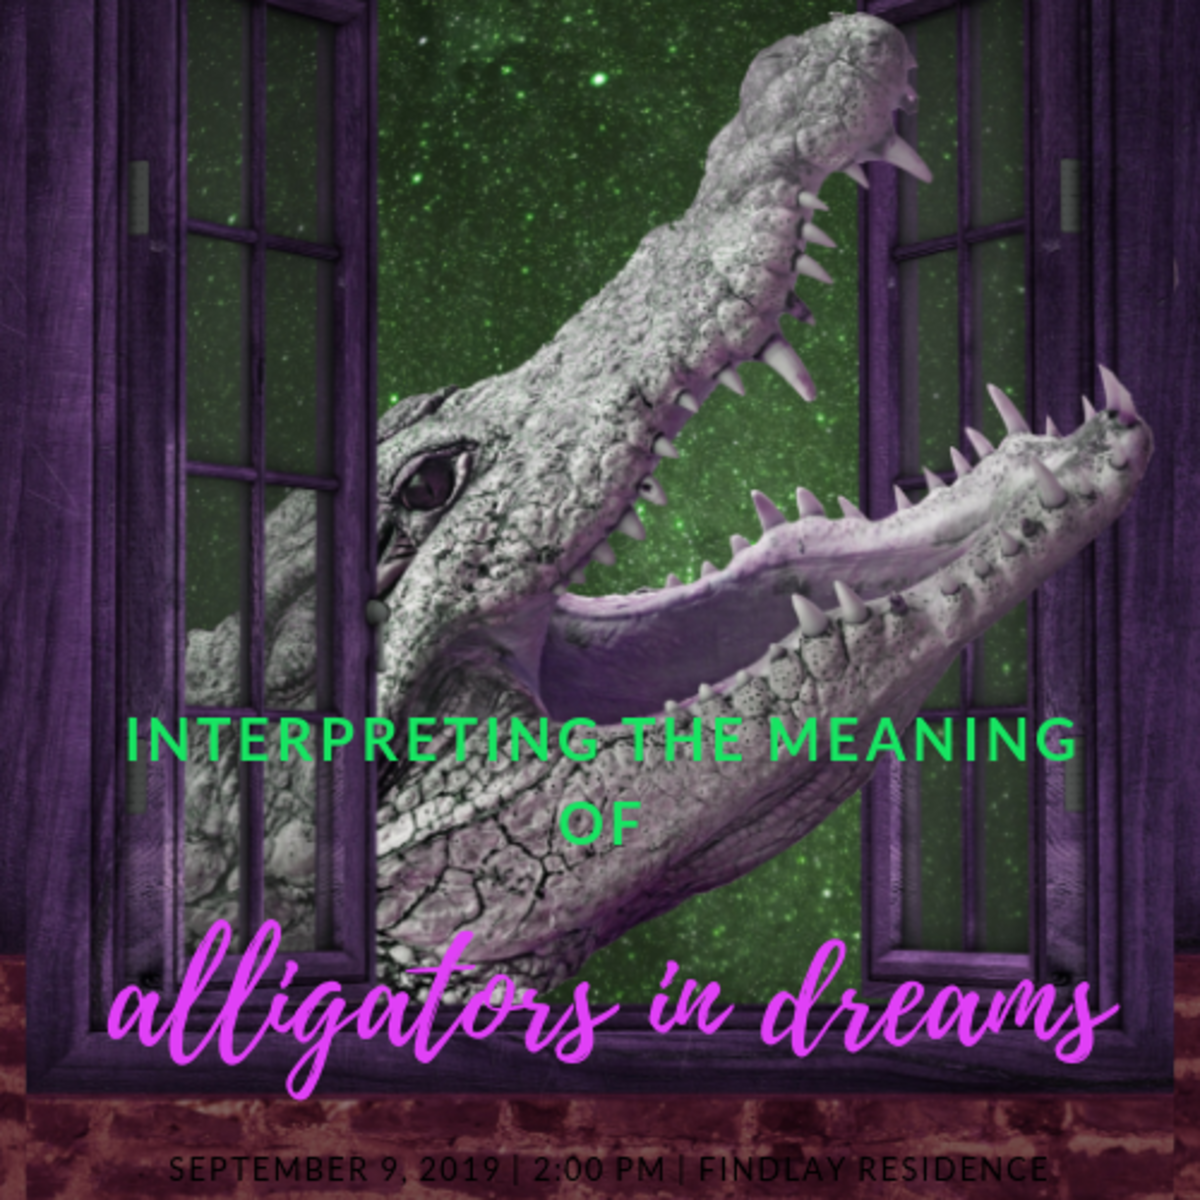 What Do Alligators and Crocodiles Mean in Dreams?